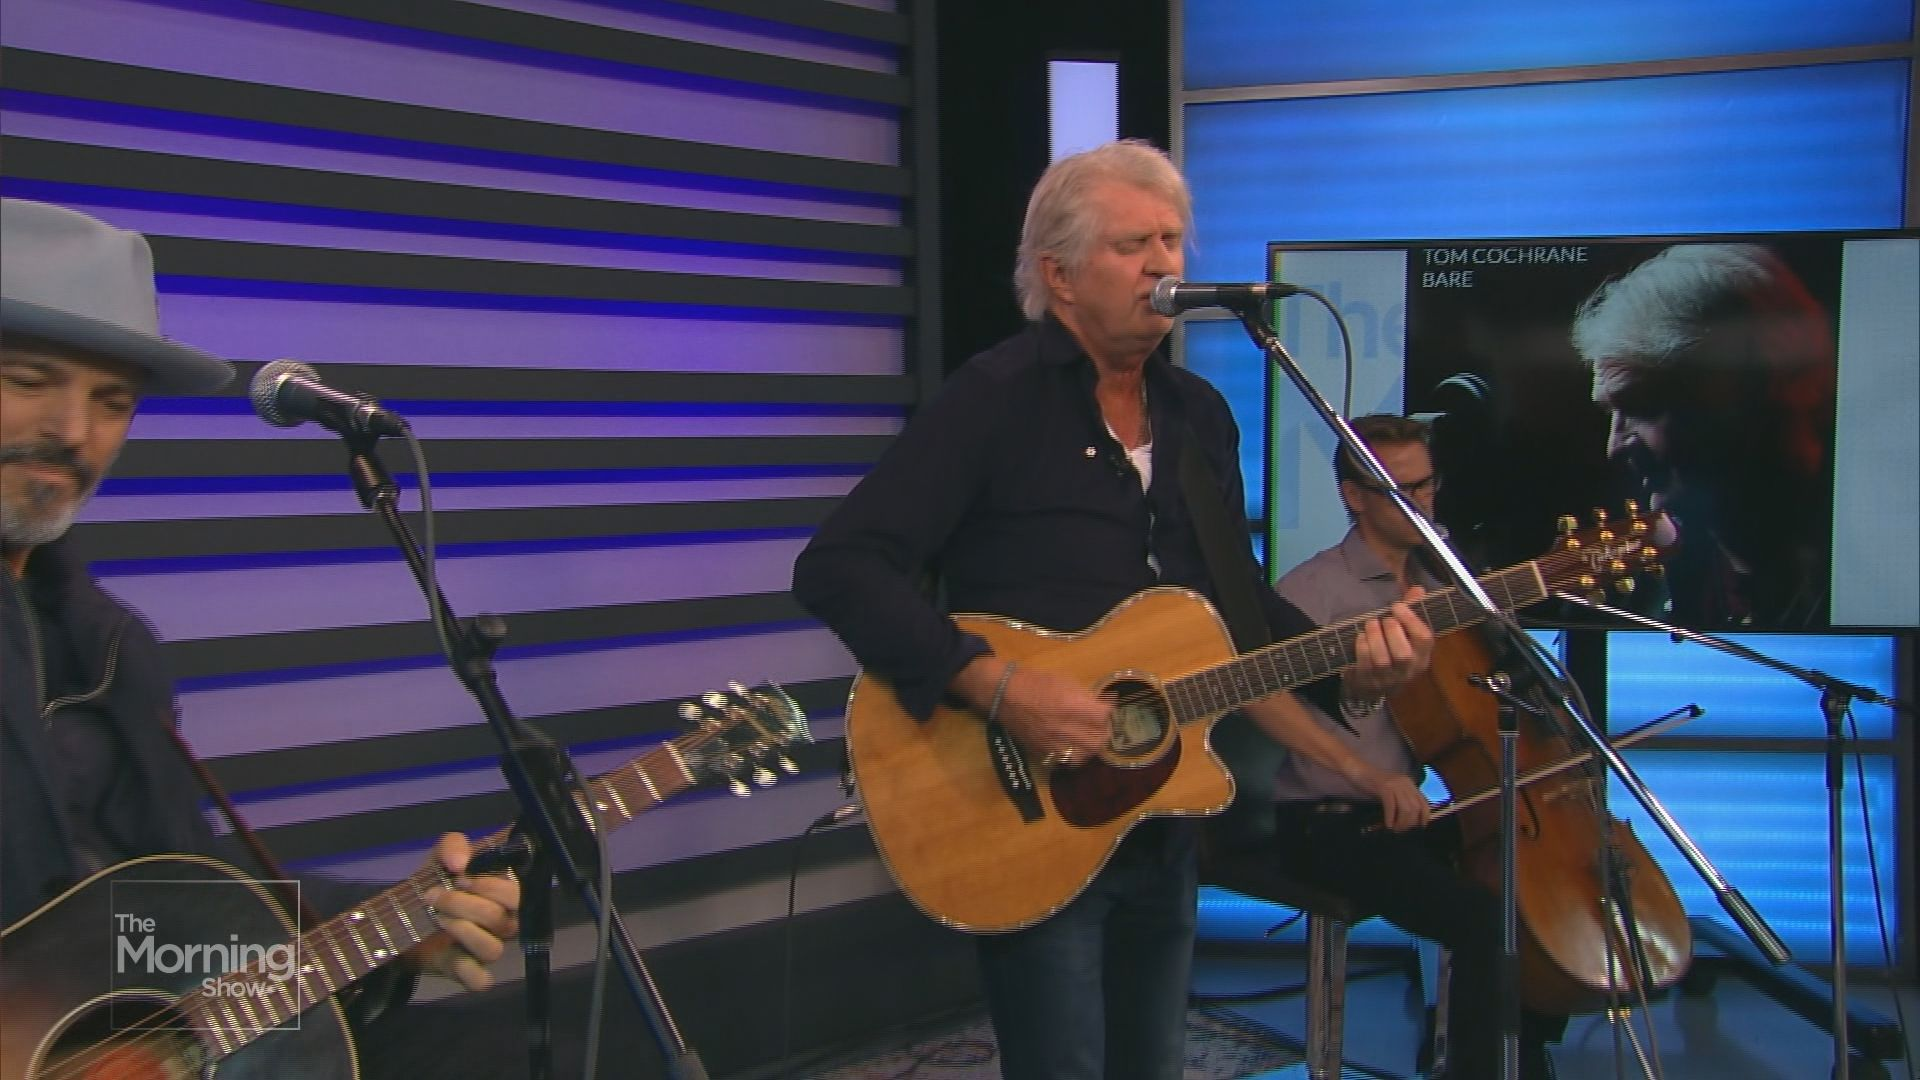 Tom Cochrane performs in The Morning Show studio